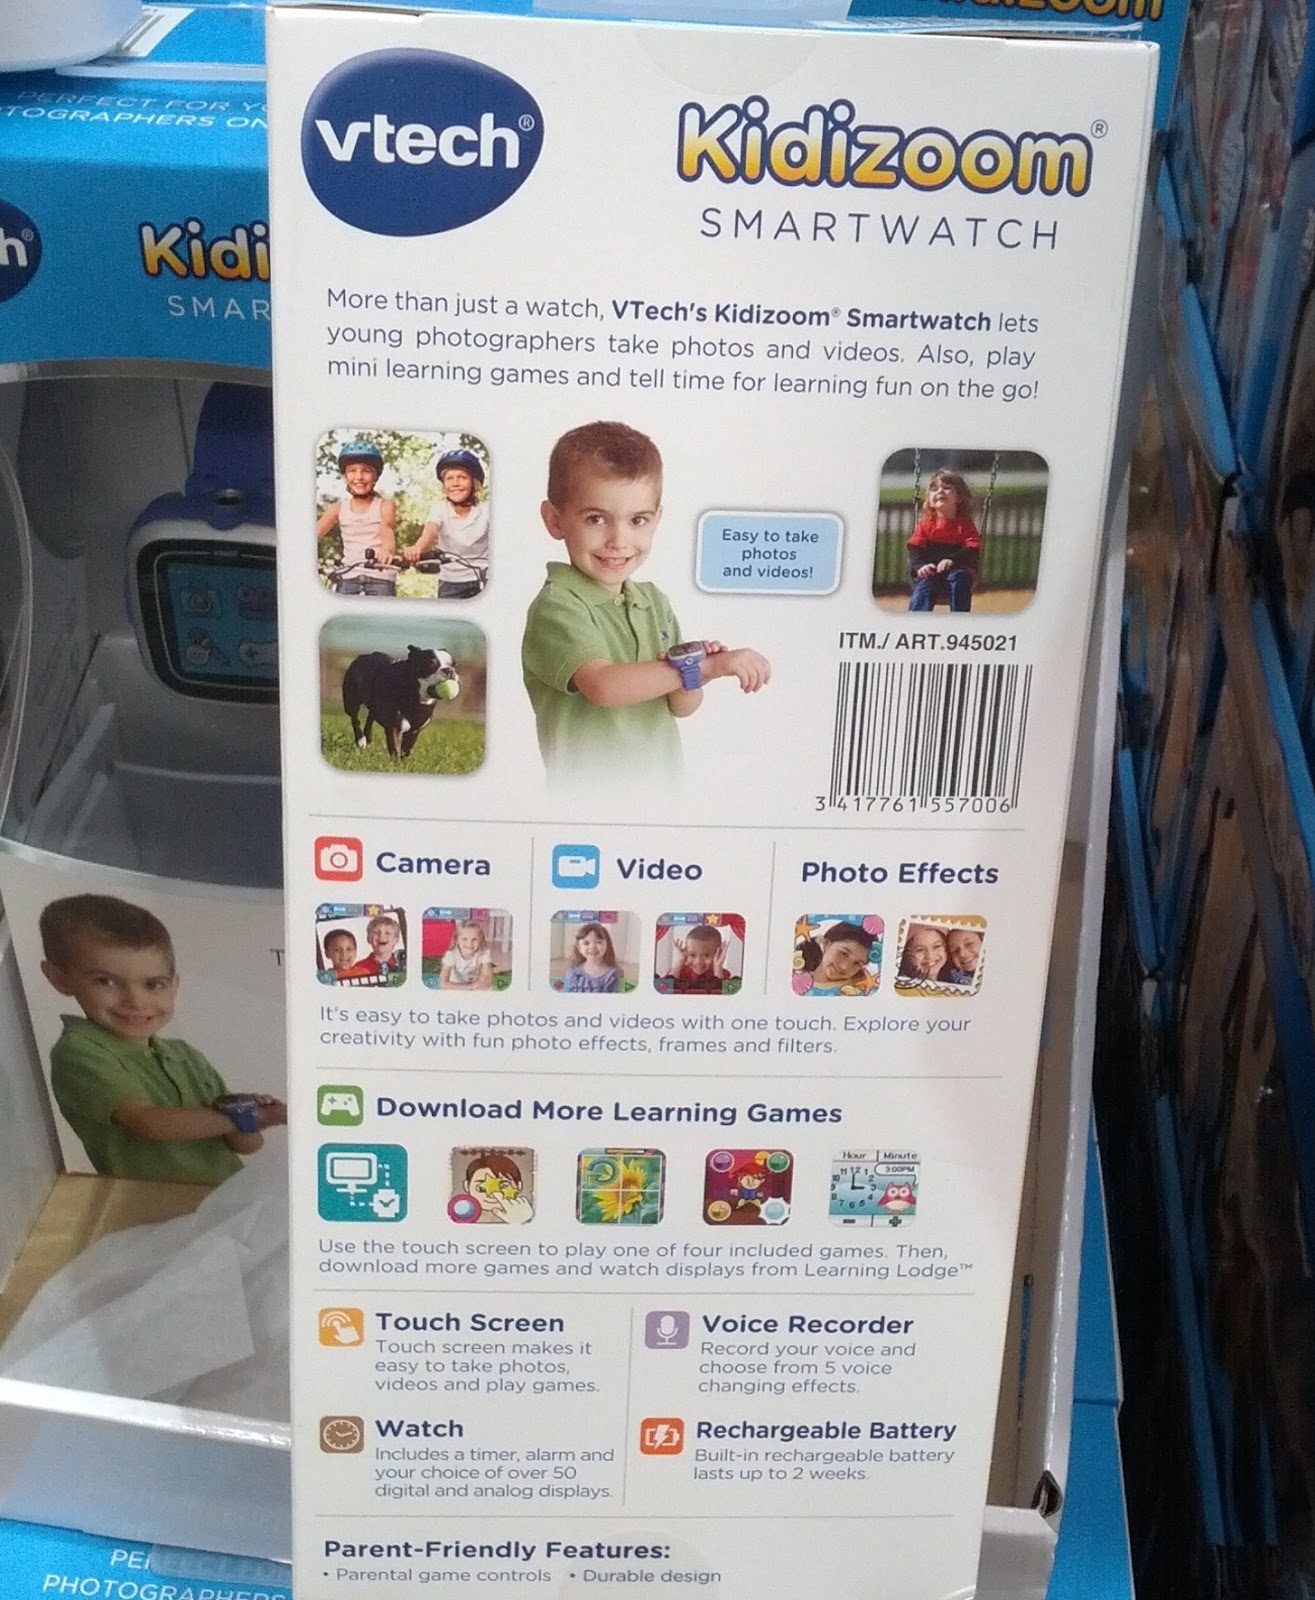 Take photos and video with the Vtech Kidizoom Smartwatch